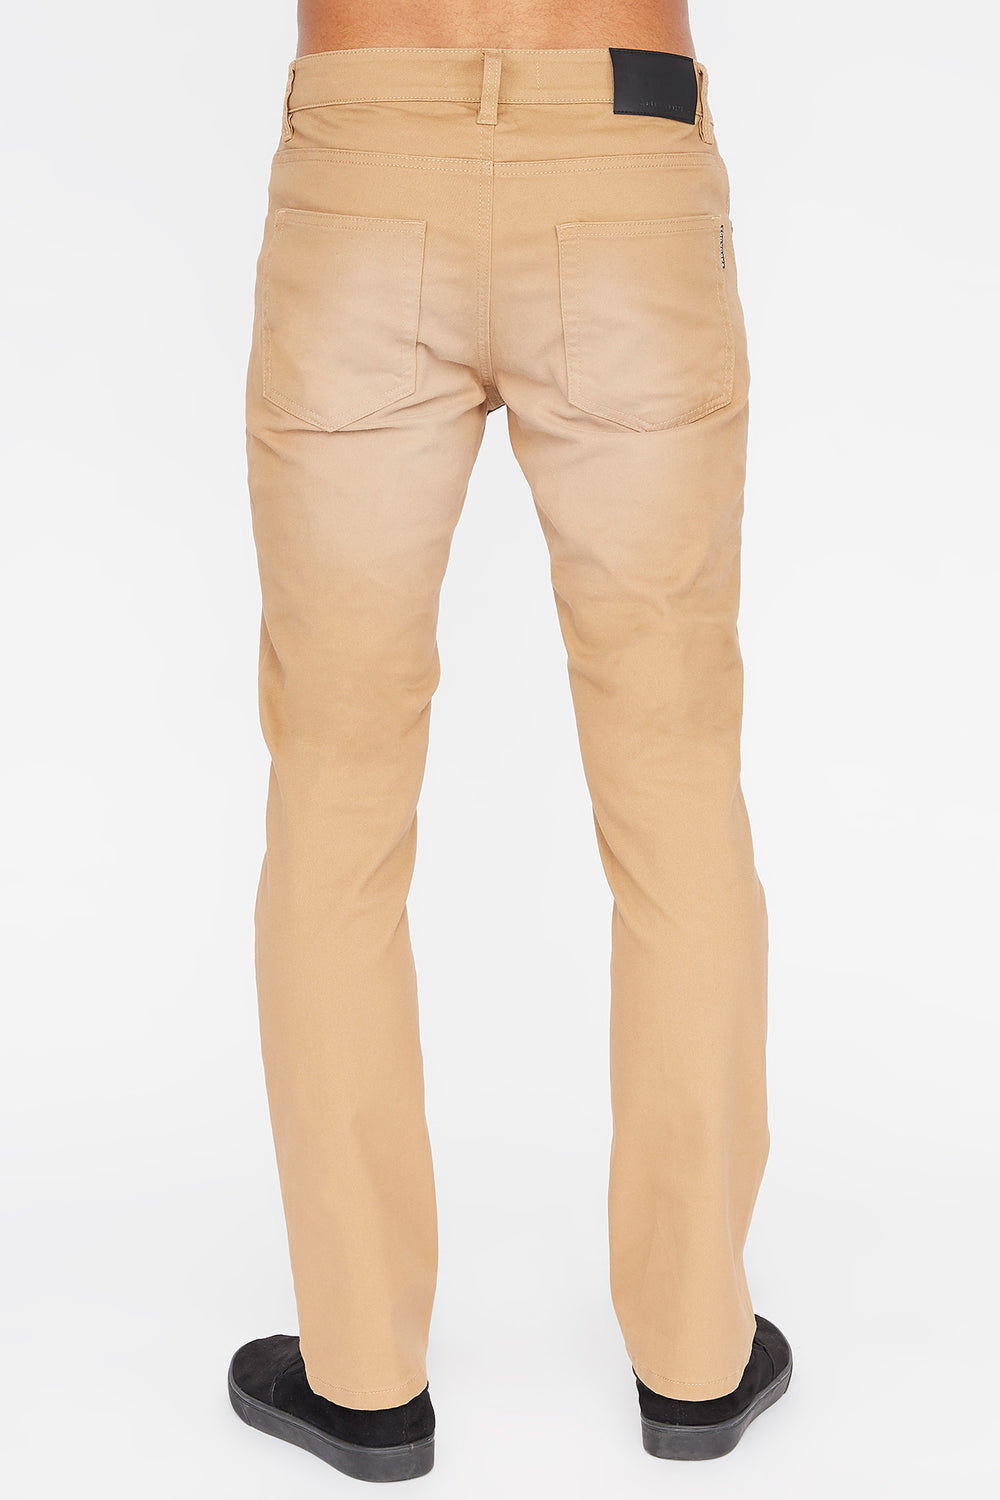 Zoo York Mens Slim Jeans Copper